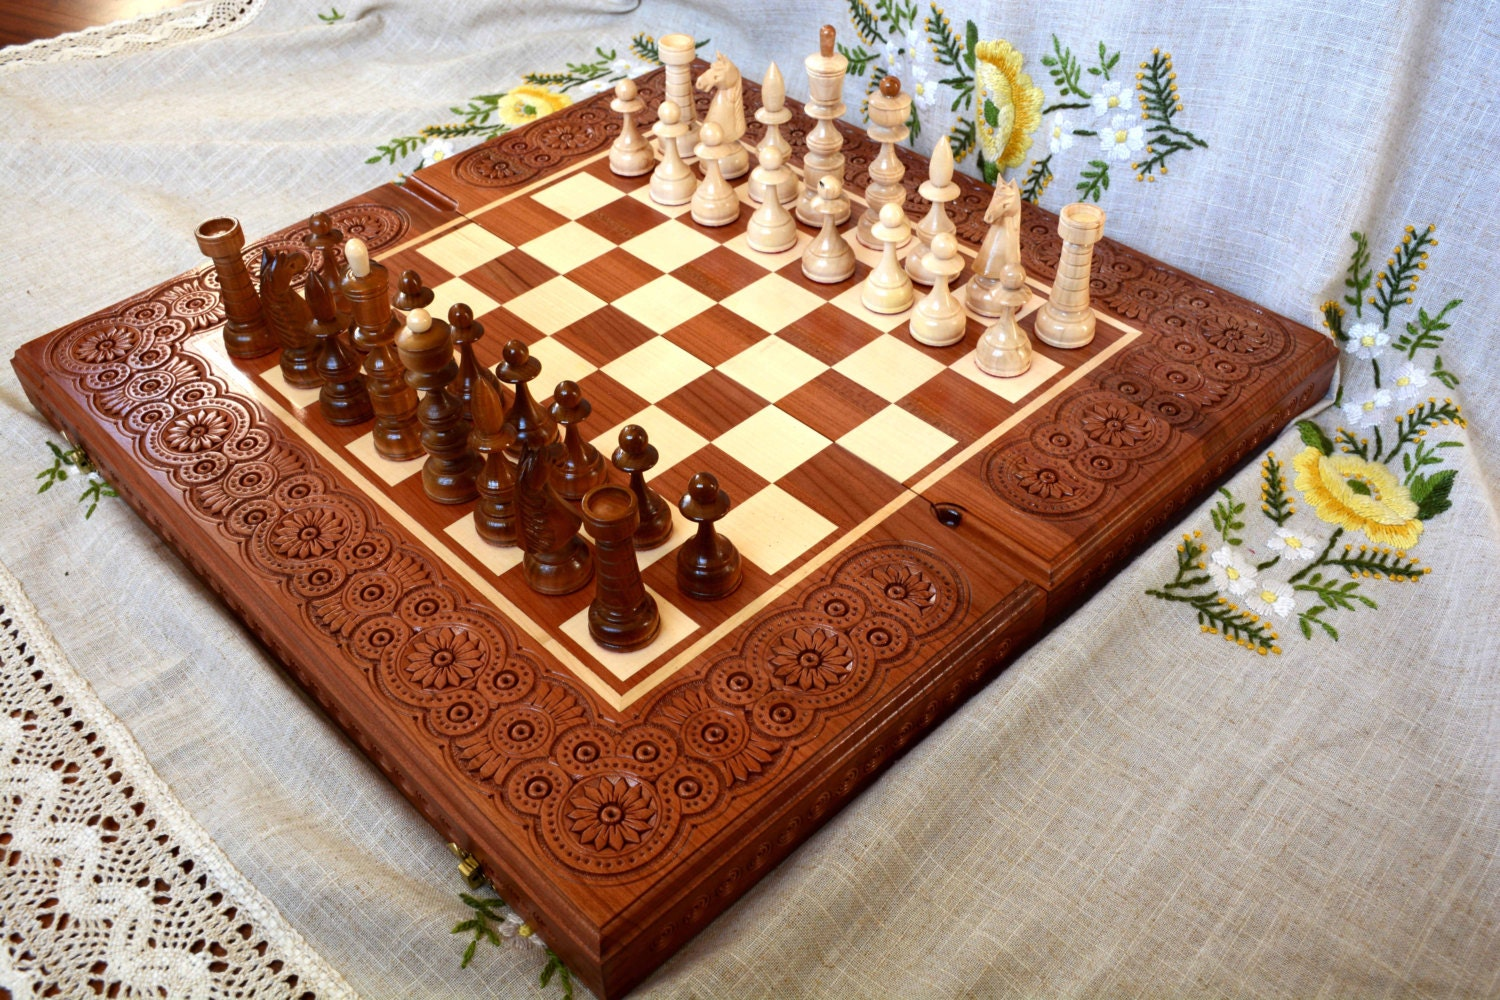 Wooden Chess Table ~ Wooden chess backgammon board wood checkers carving game